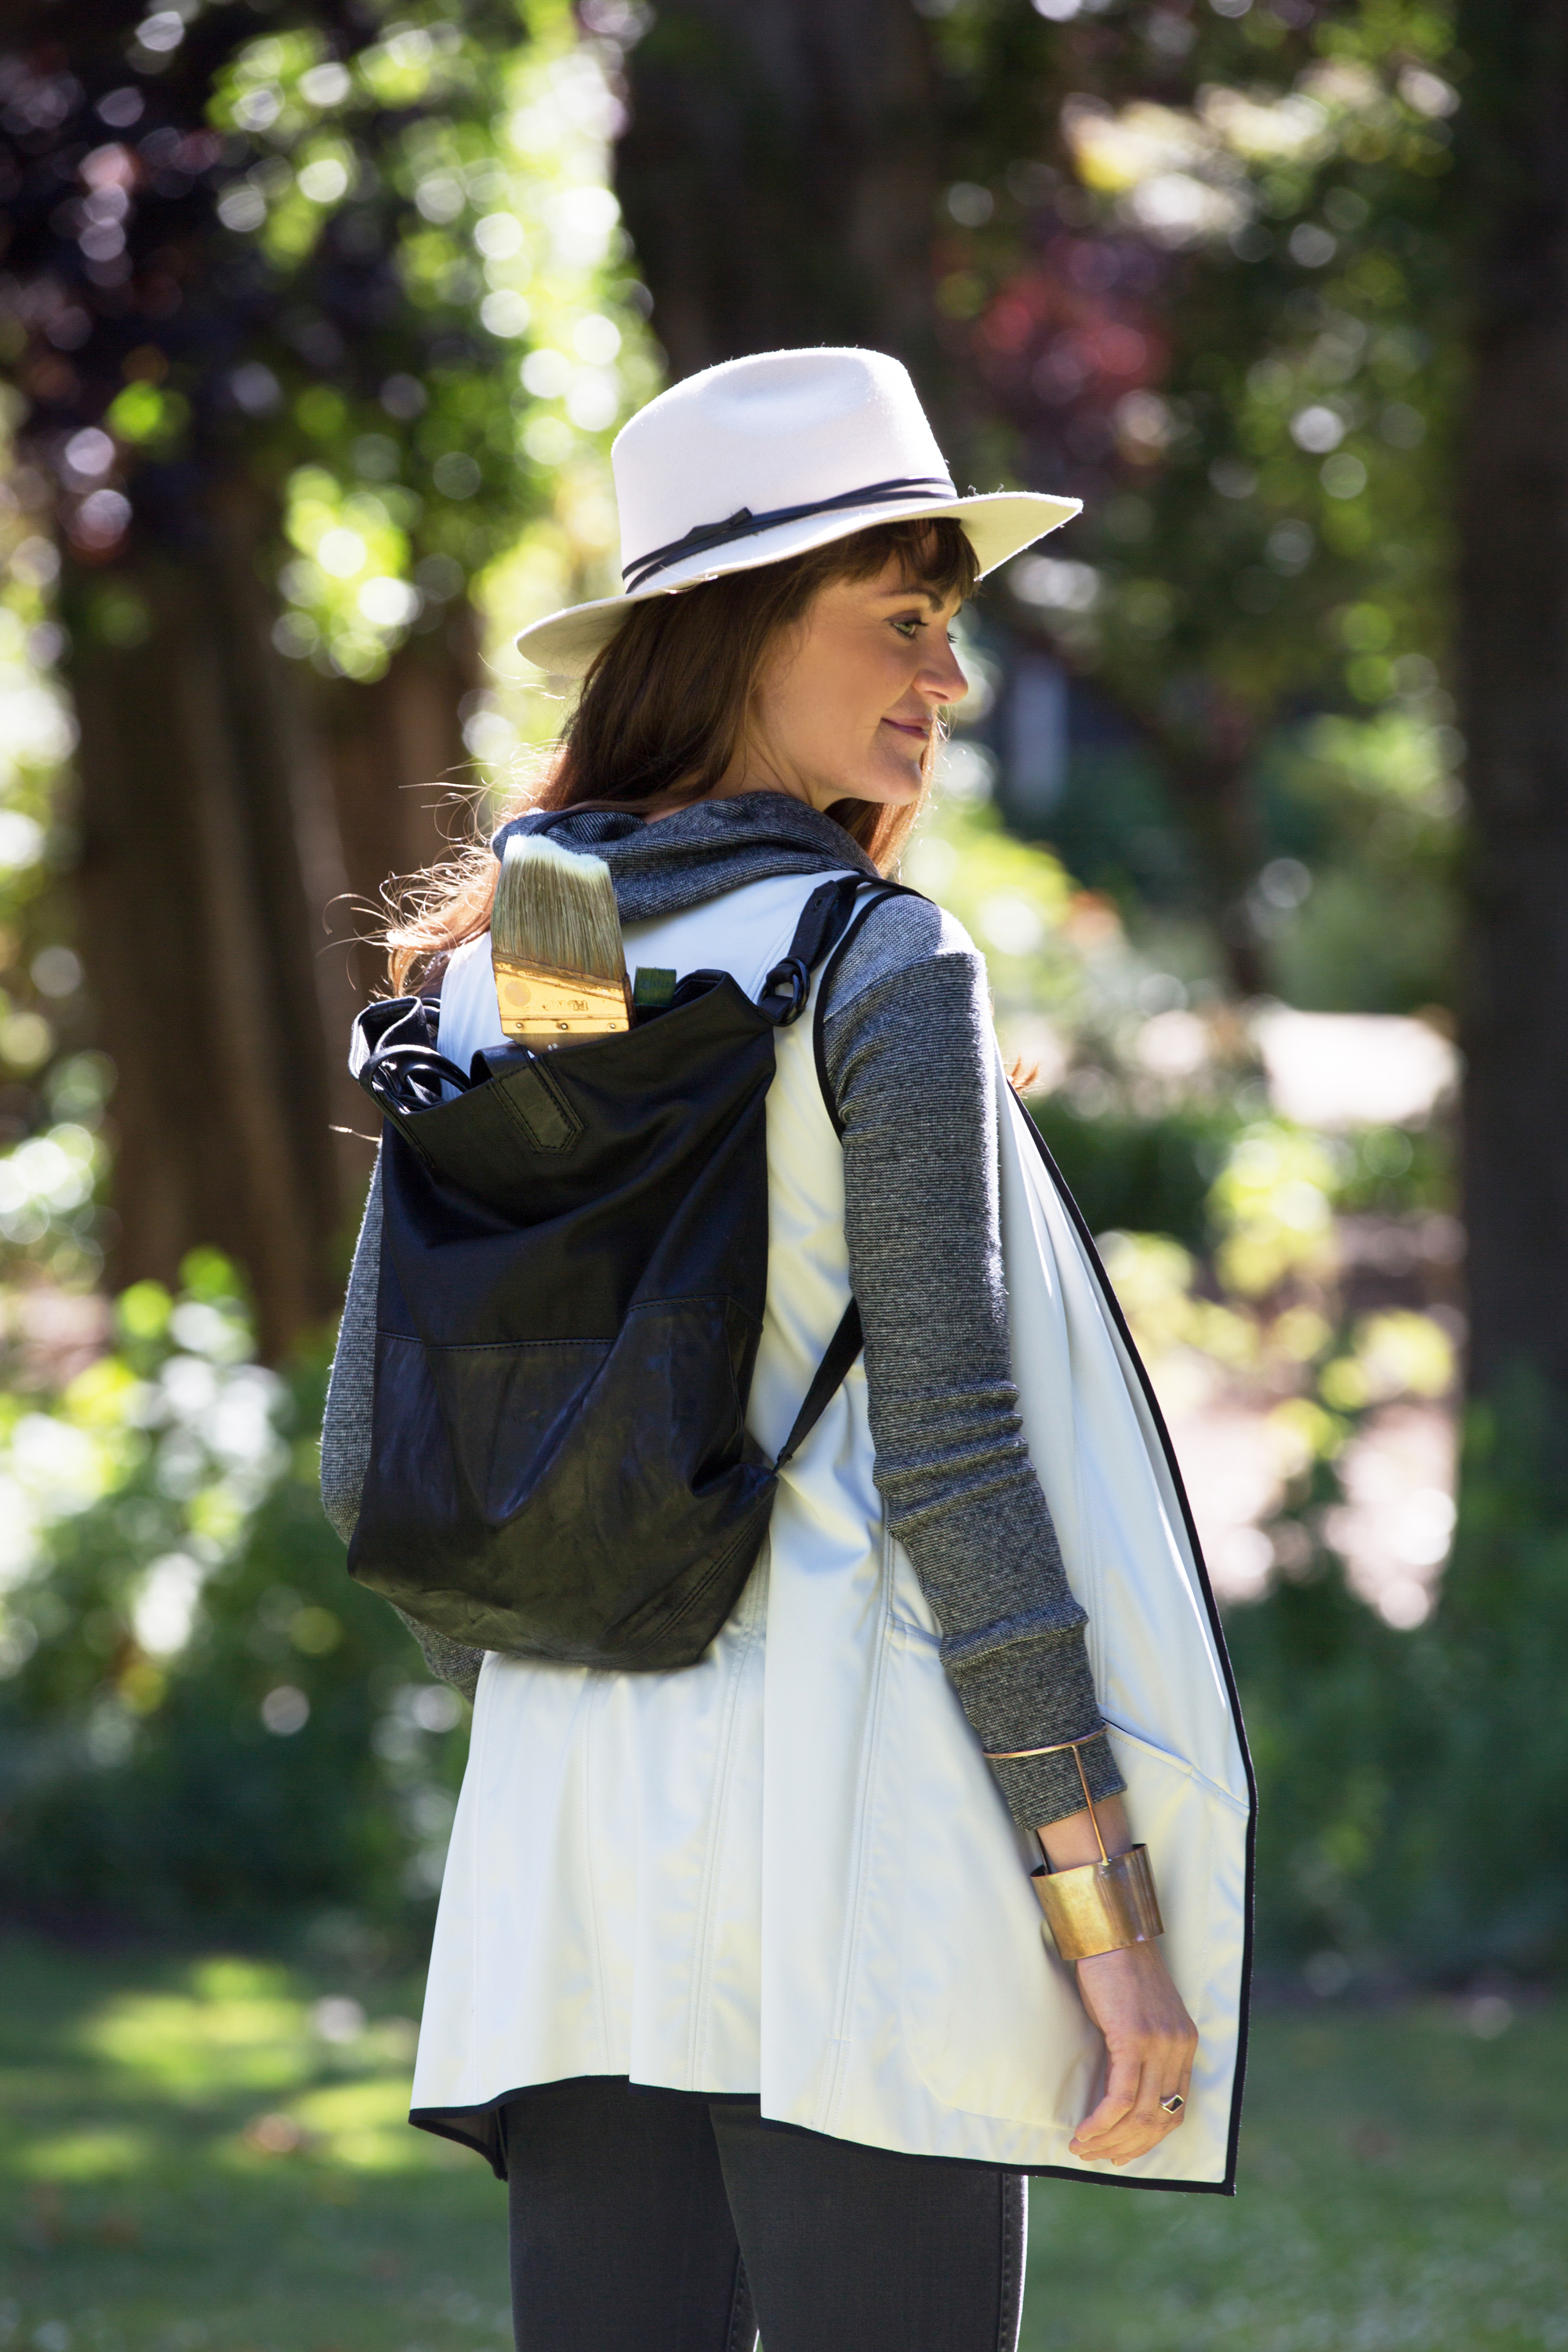 On Maja:   Olivier Sweater   |   K  atya Vest   |   Rogue Hat   |   Manhattan Tote Bag